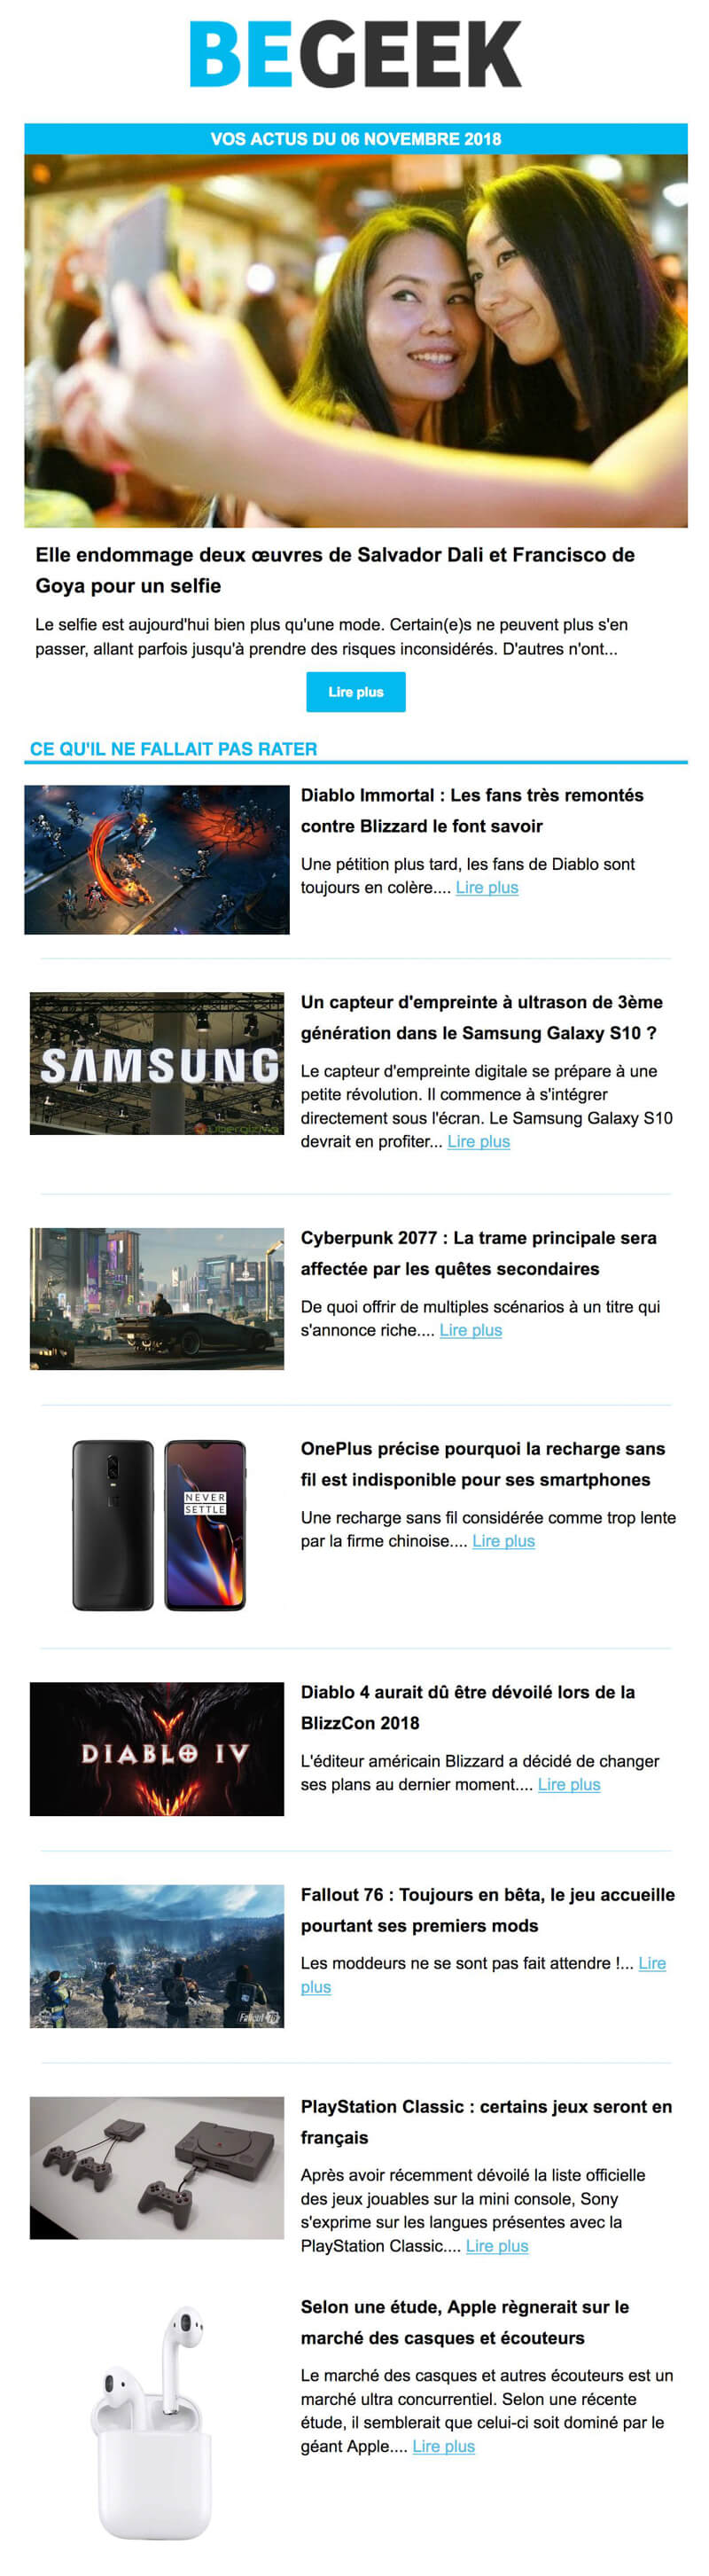 Newsletter Begeek